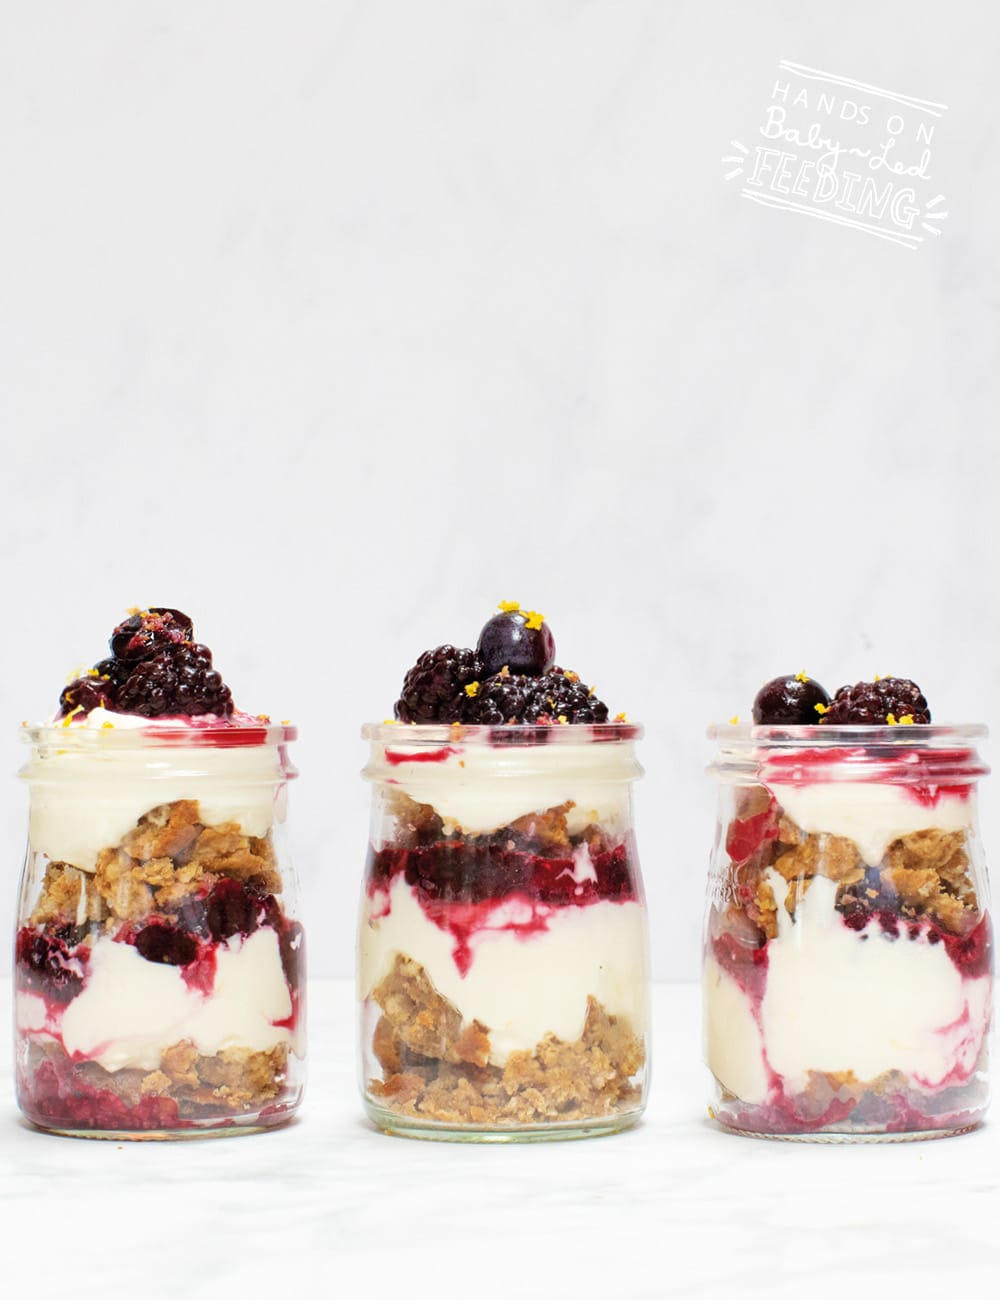 Blackberry and Blueberry Cheesecake Jar Recipe Images5